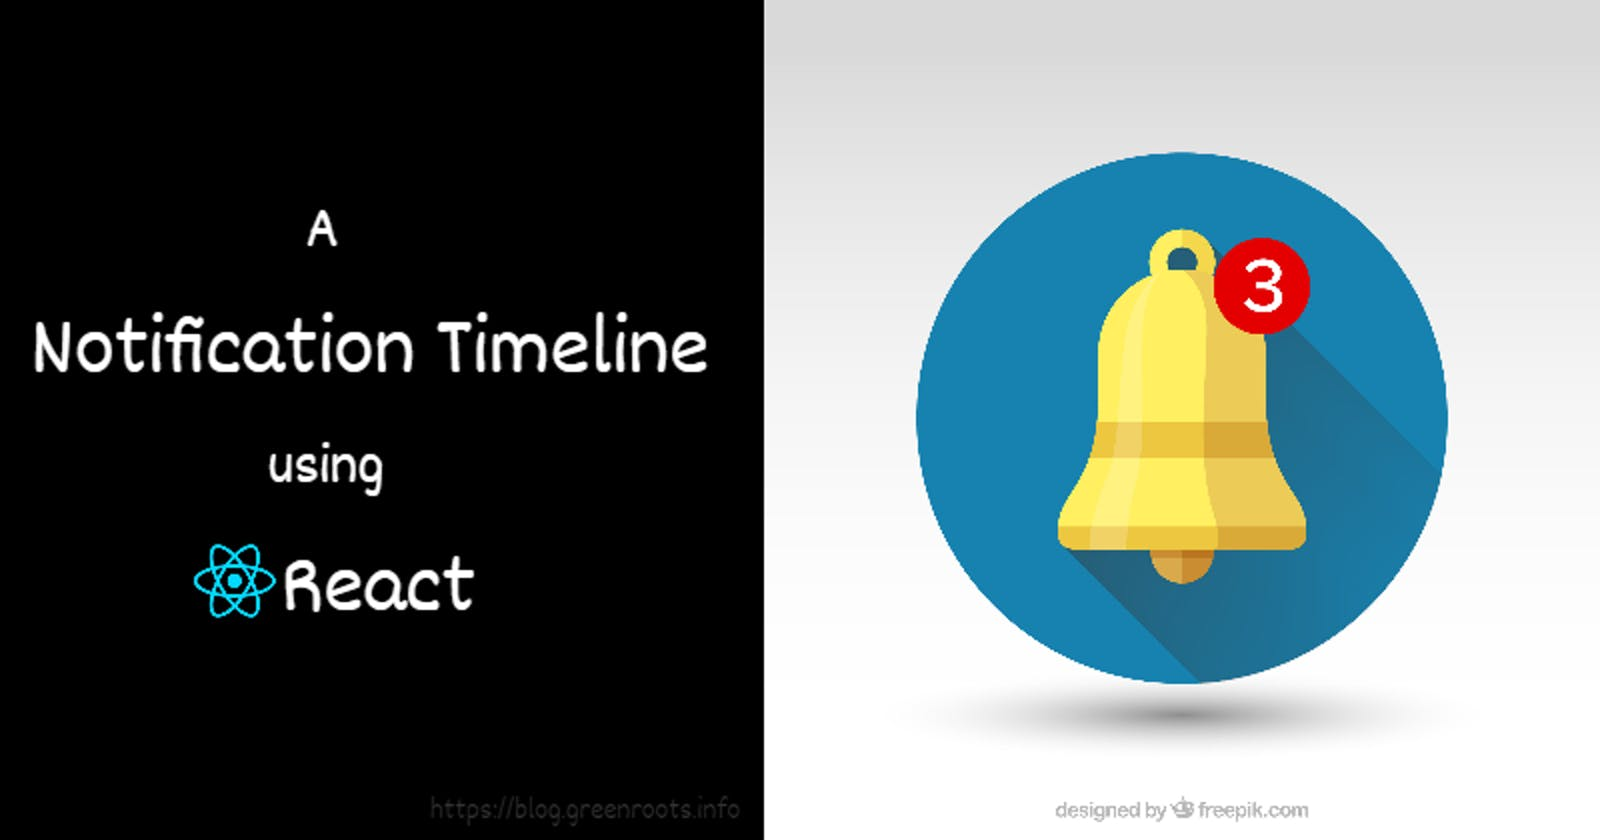 A Notification Timeline using React